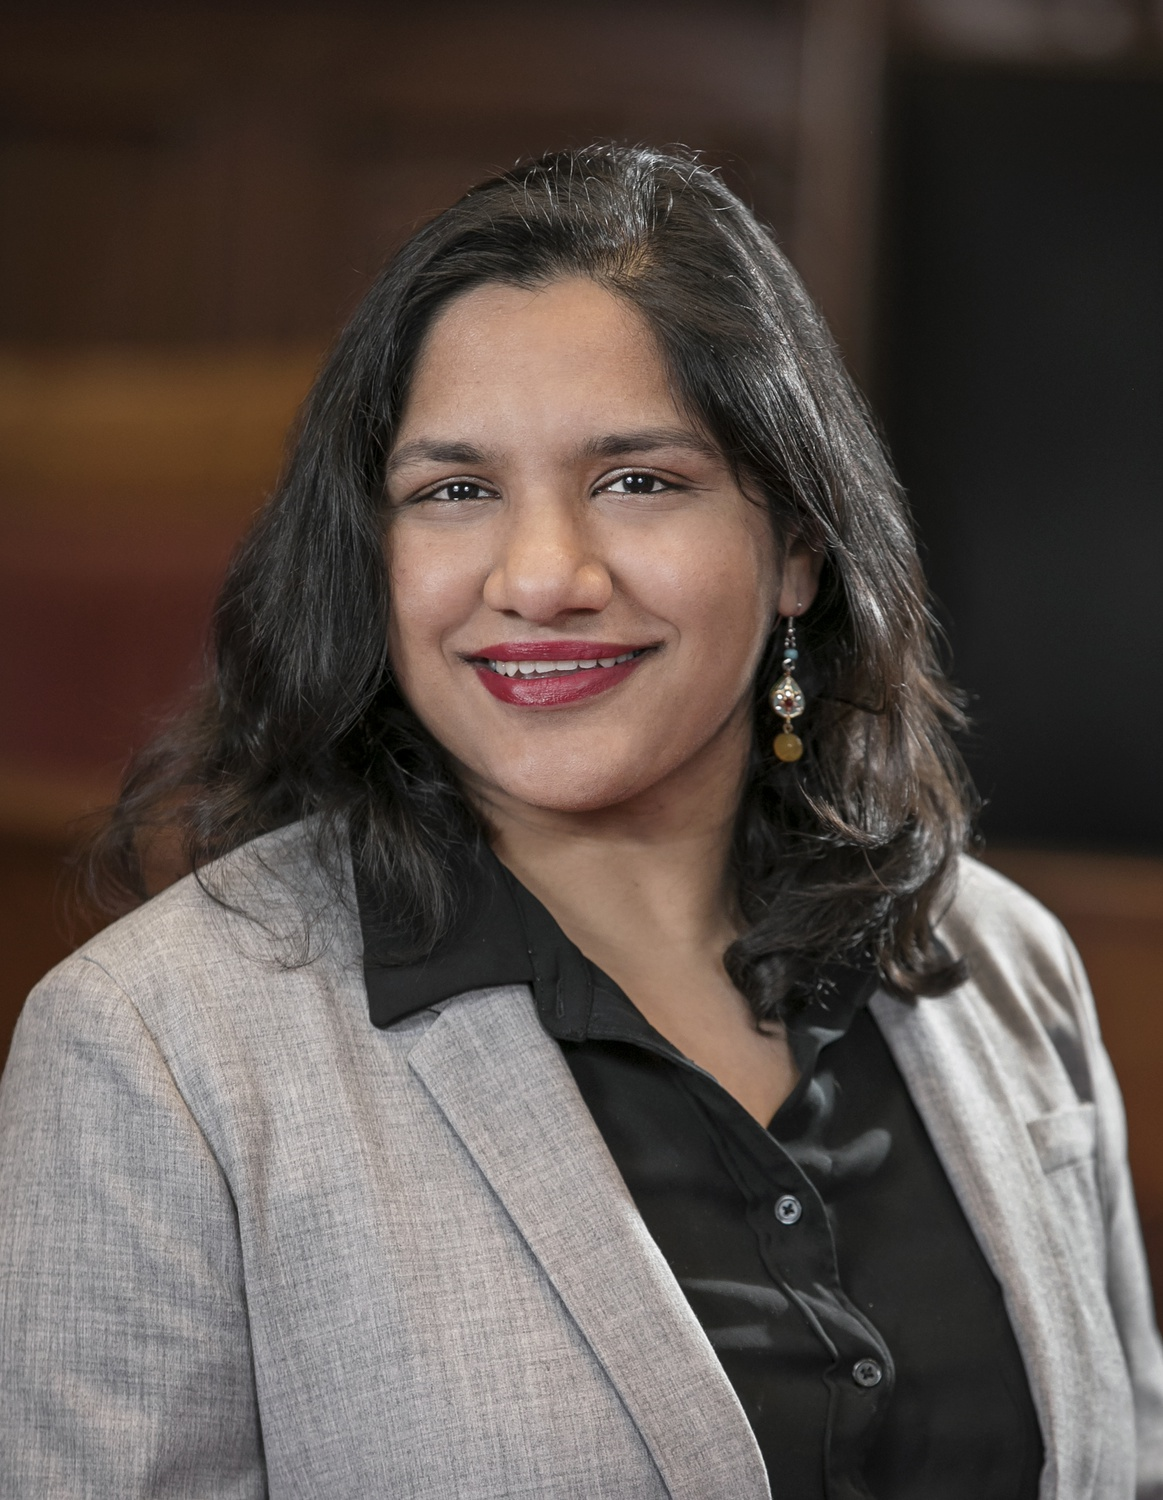 Cambridge Mayor Sumbul Siddiqui said in an interview Friday that supply issues were hindering more grassroots efforts in the city's vaccination campaign.